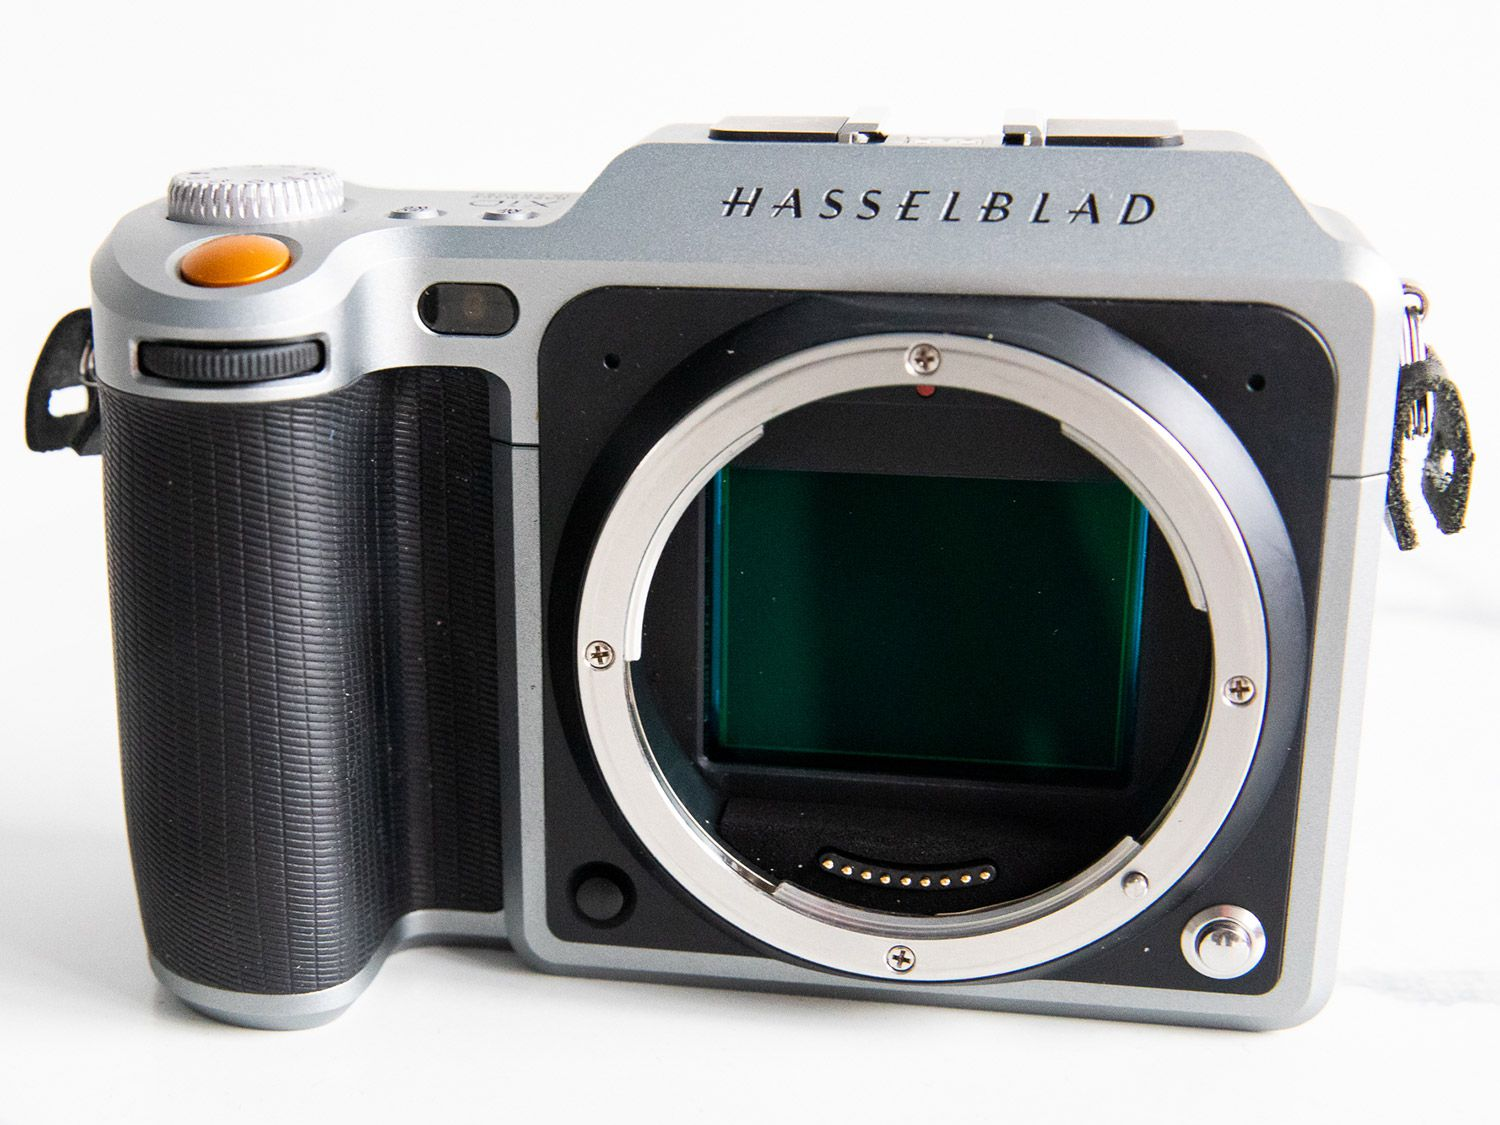 Hands on with the Hasselblad X1D-50C, plus sample images